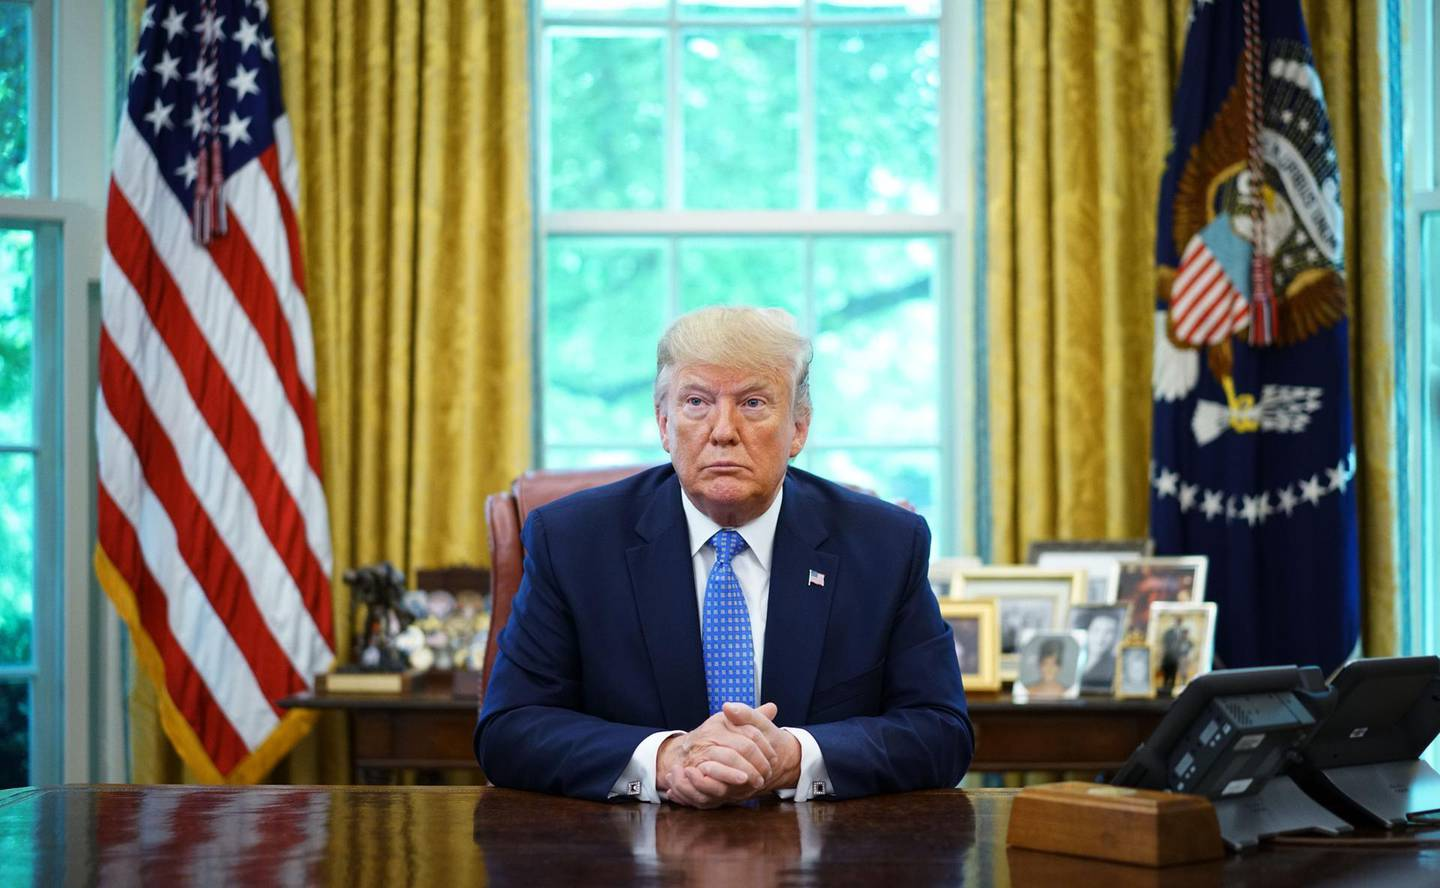 US President Donald Trump speaks during a meeting with advisors about fentanyl in the Oval Office of the White House in Washington, DC on June 25, 2019.  / AFP / MANDEL NGAN